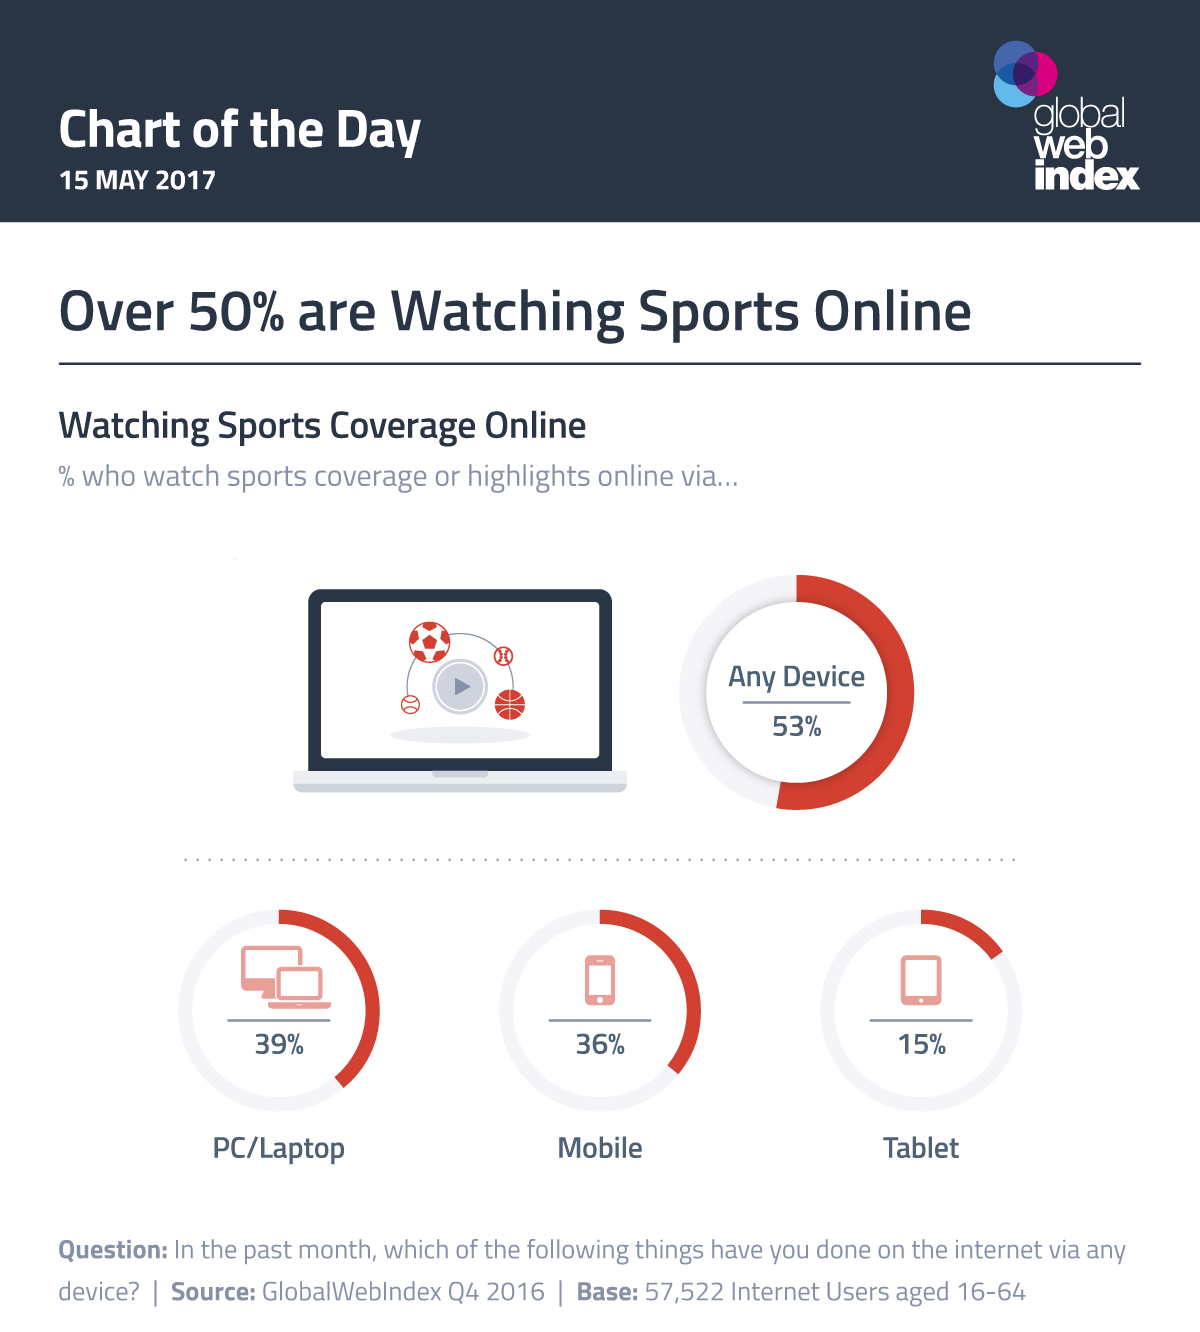 Over 50% are Watching Sports Online